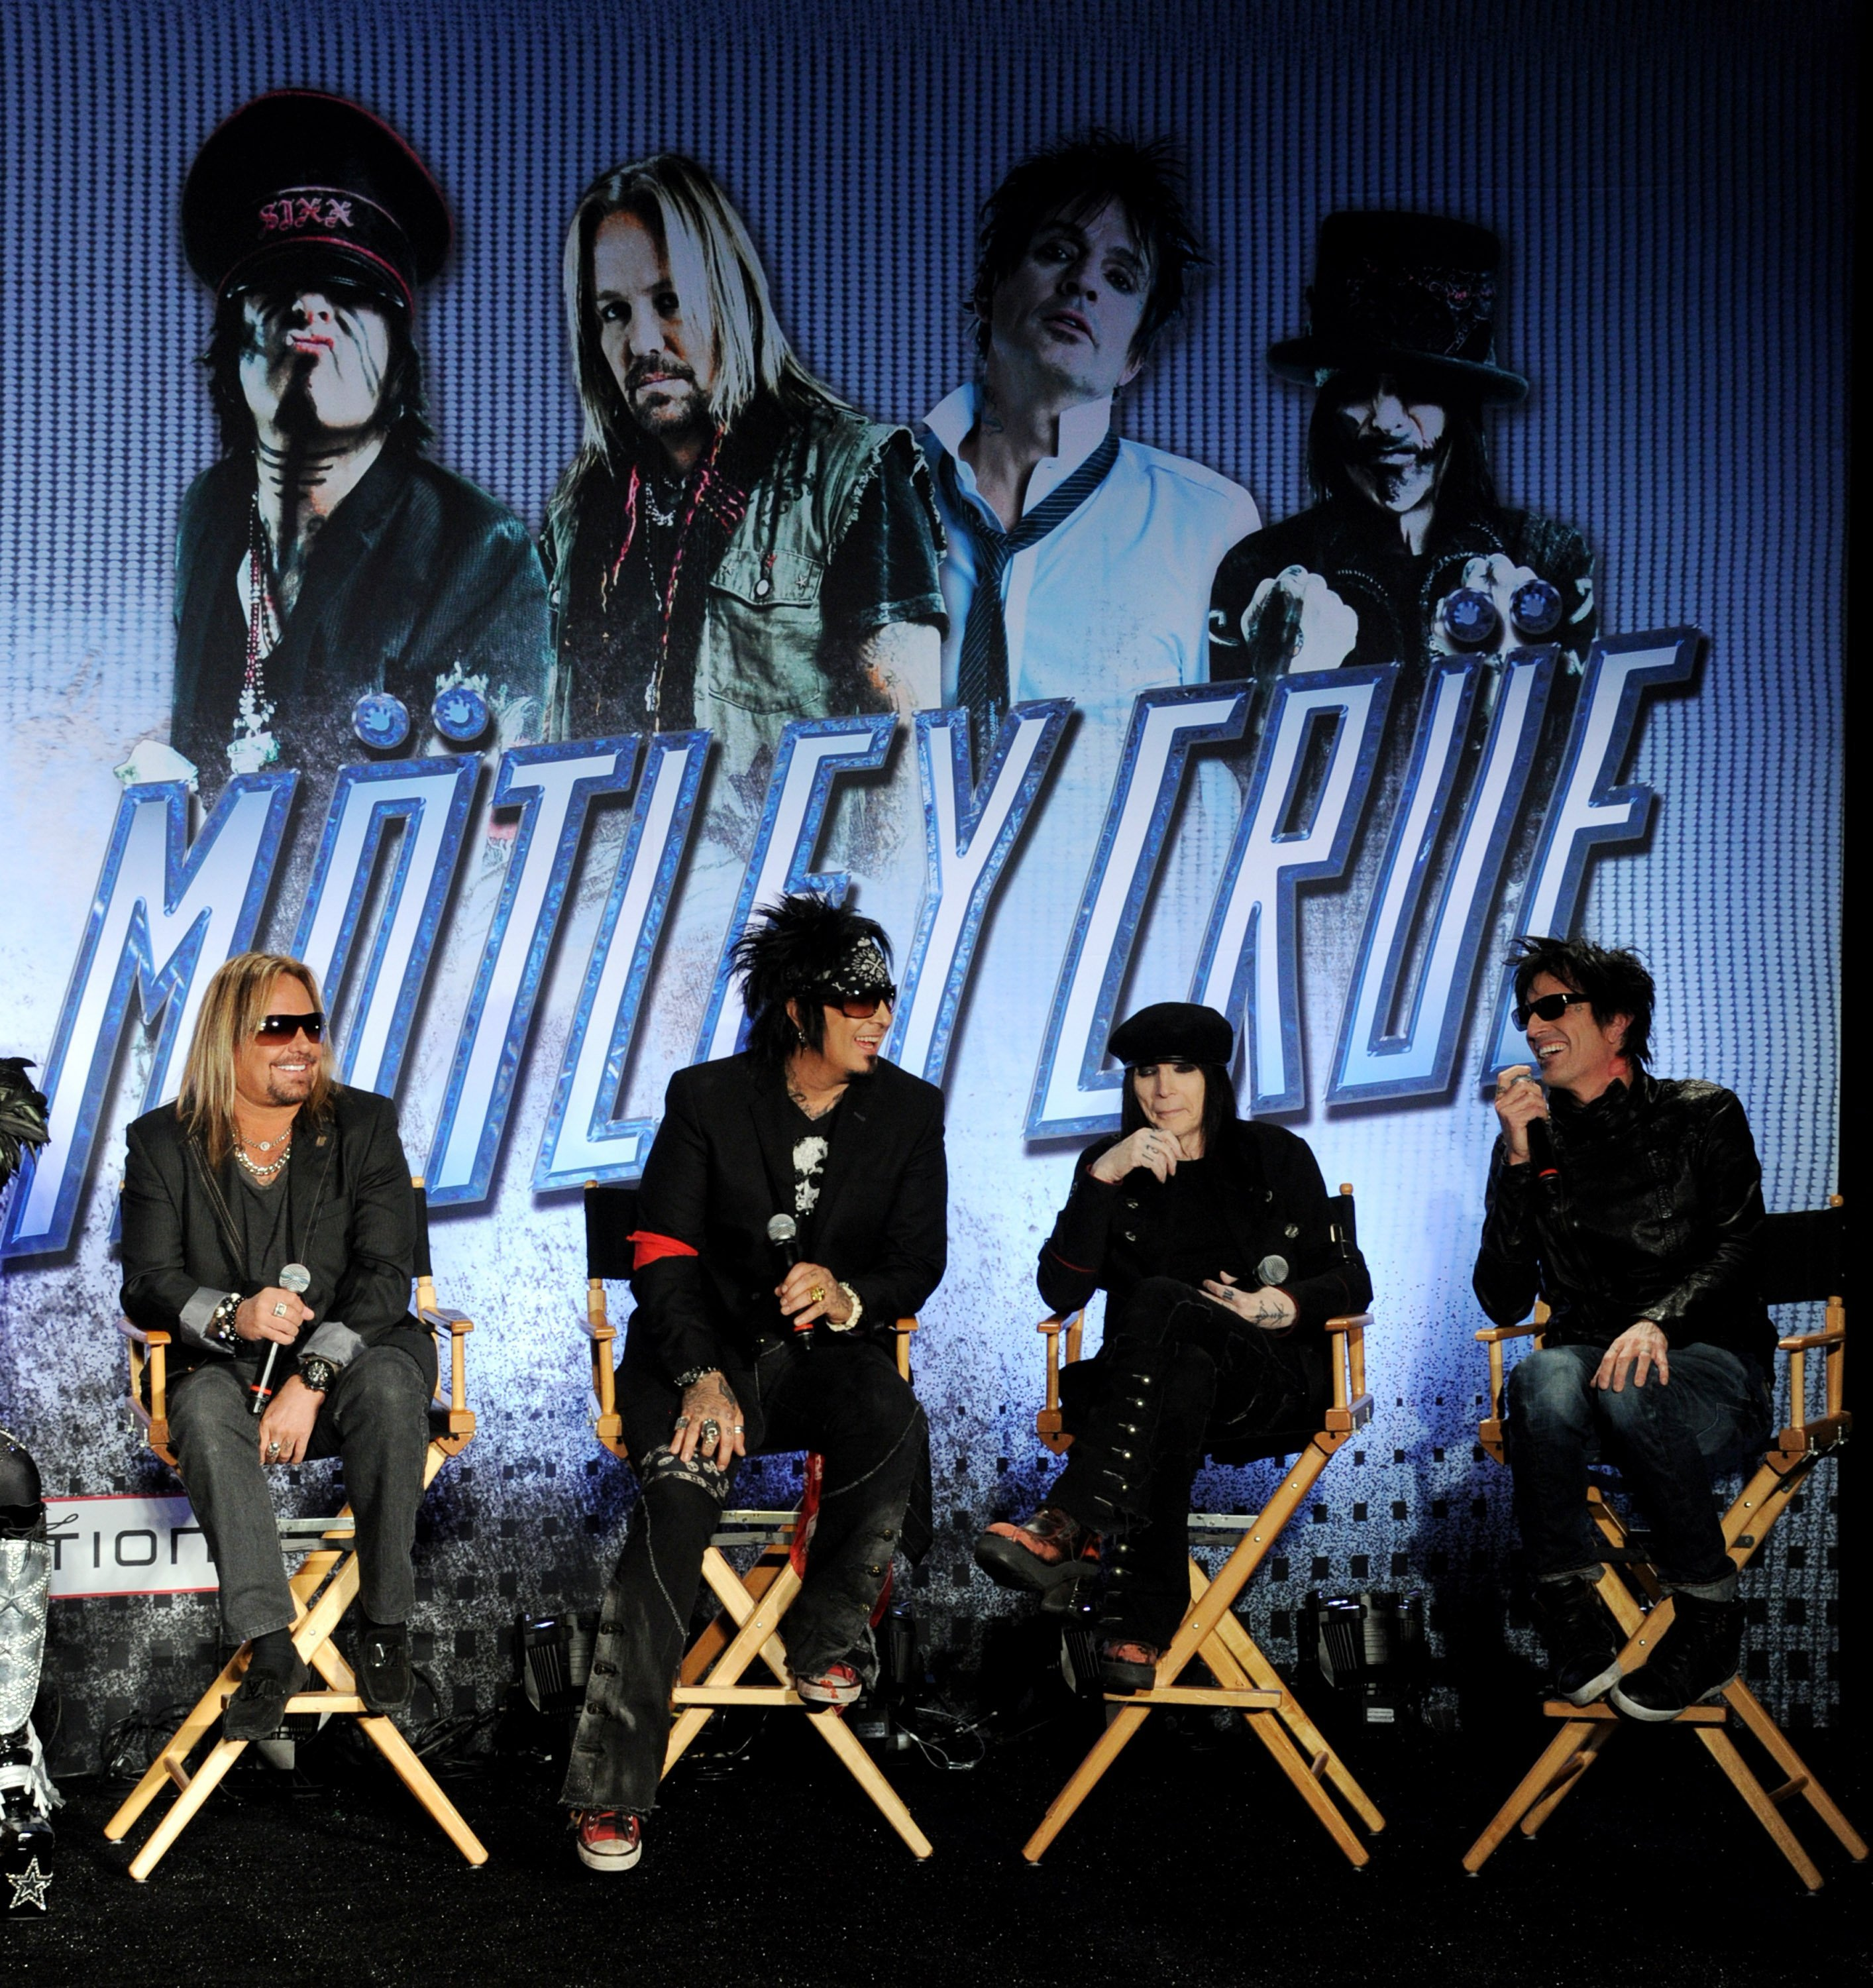 Mötley Crüe is back together and going on tour